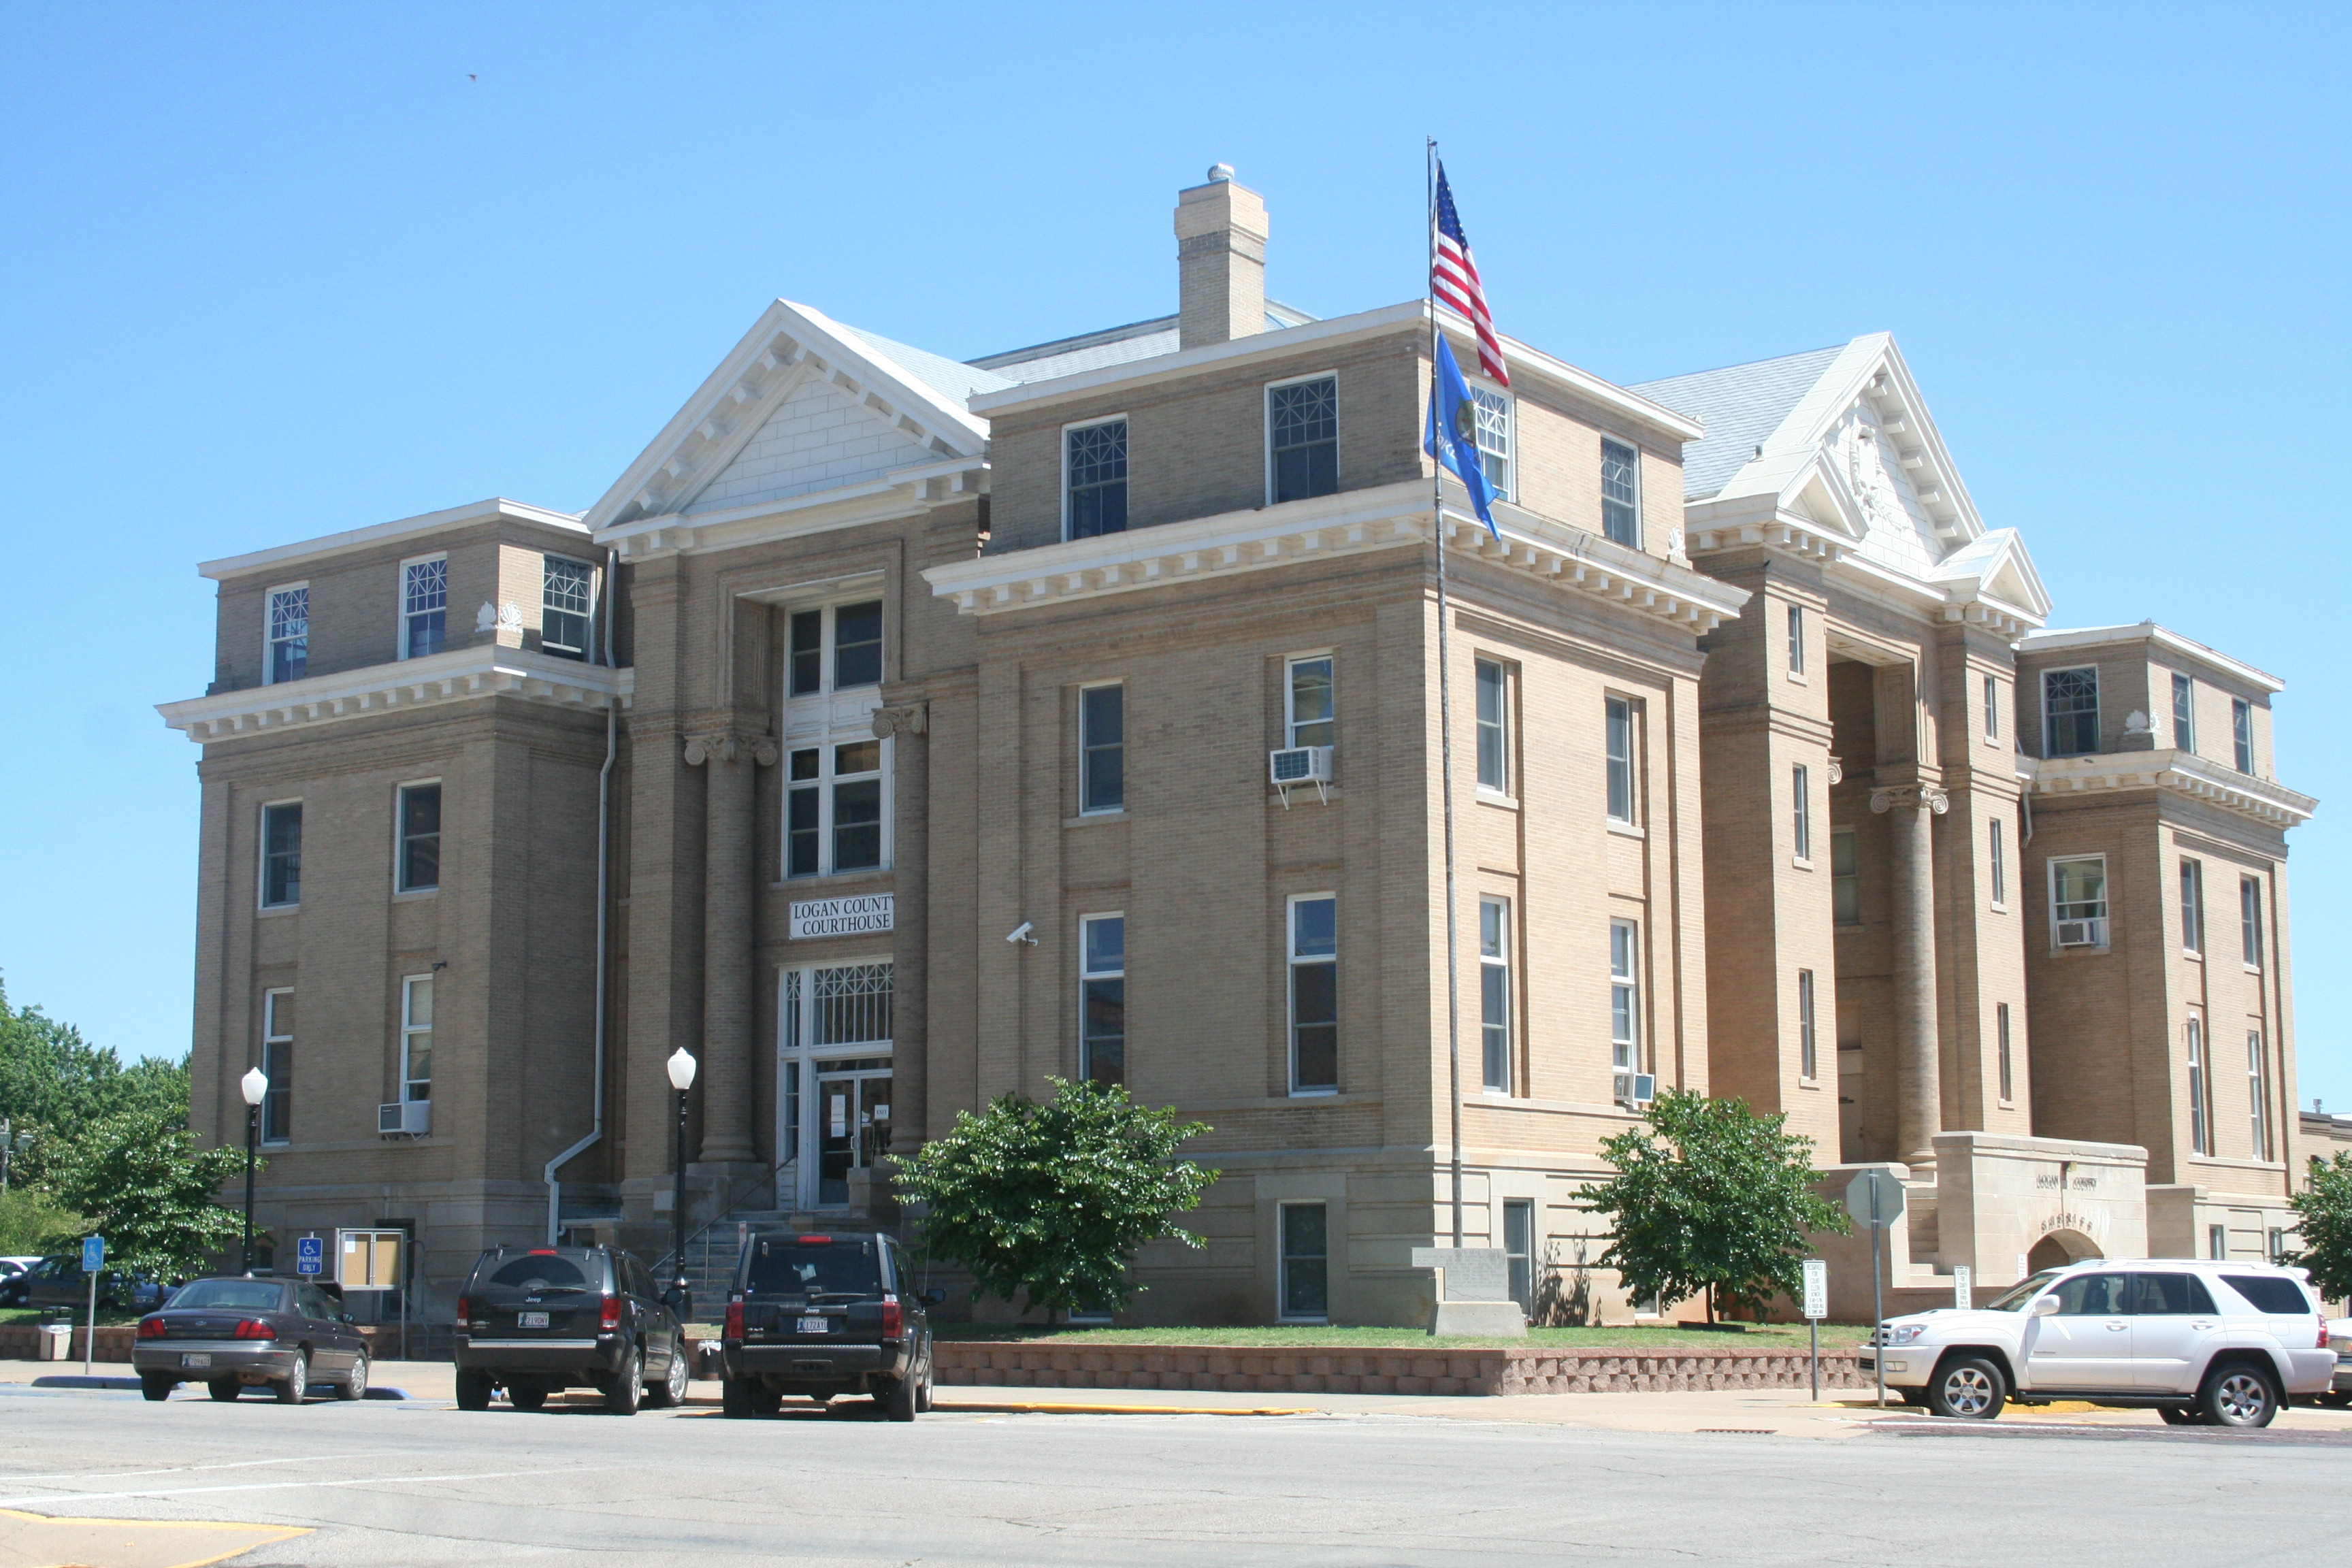 Courthouse Facing Overcrowding Handicap Facility Issues